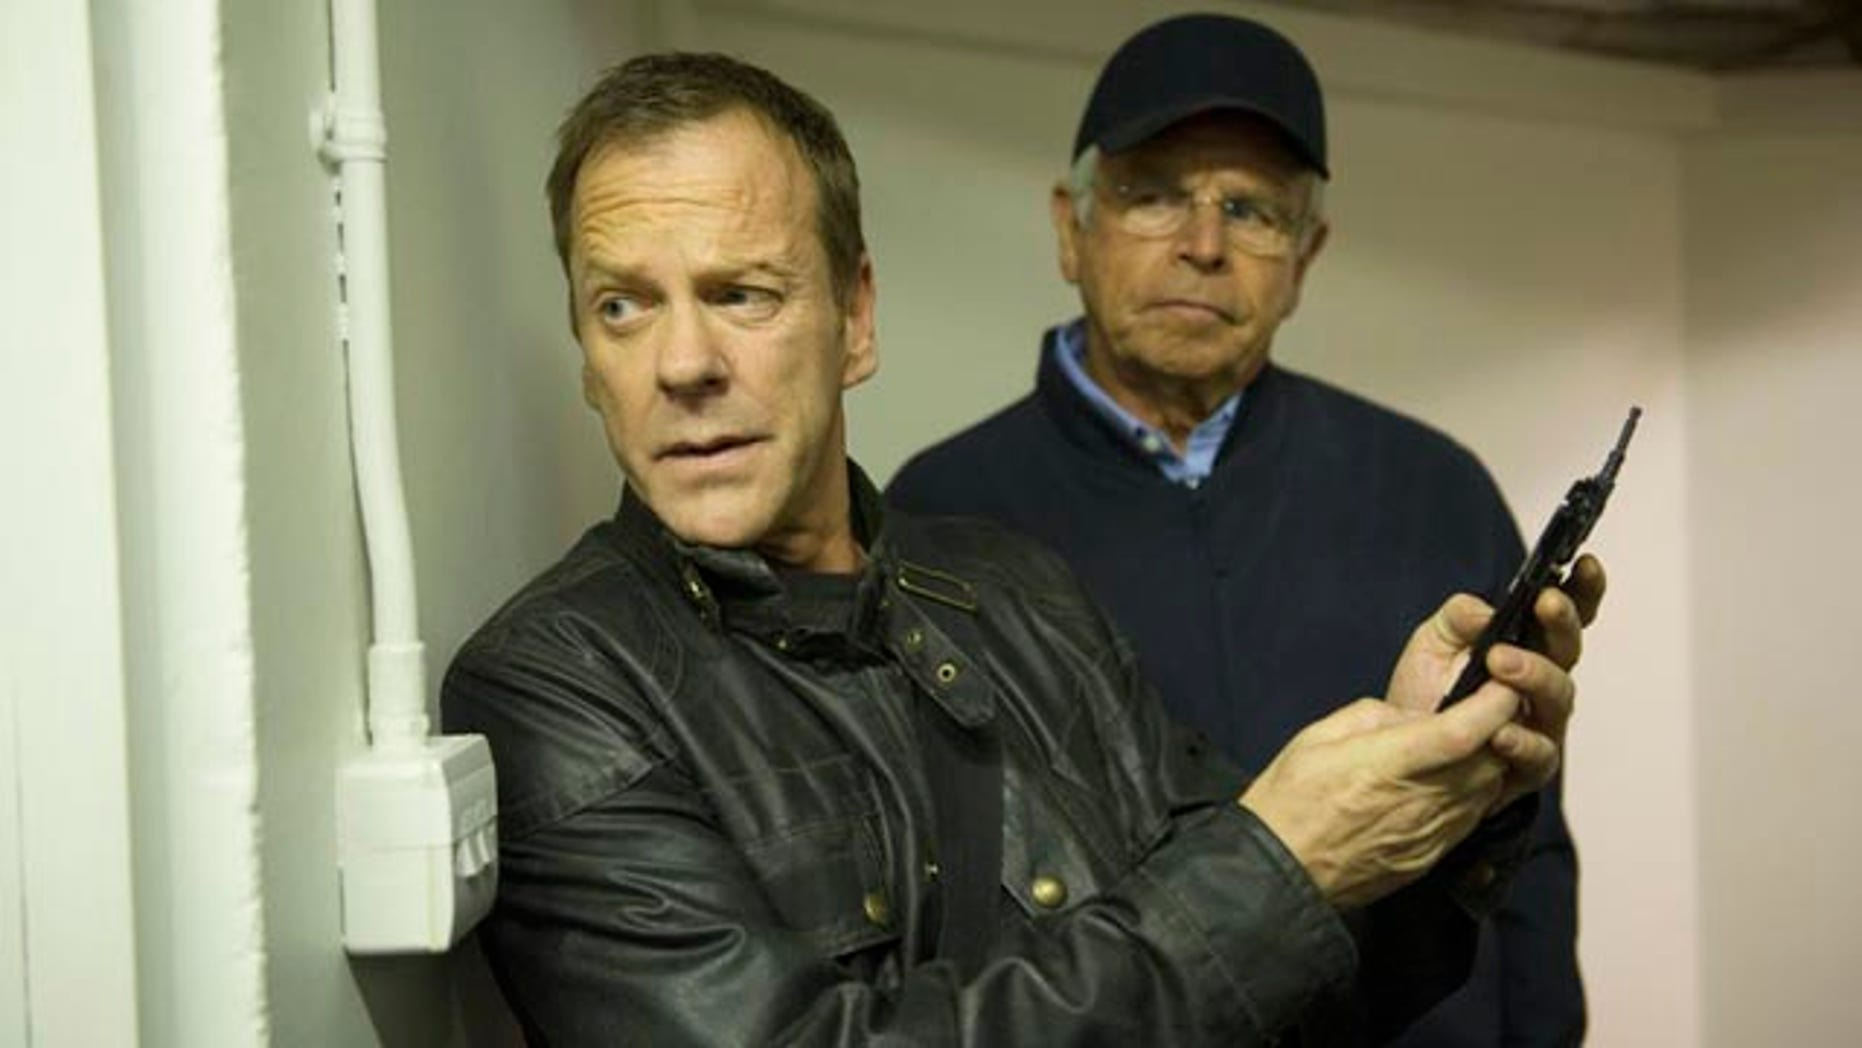 Jack Bauer (Kiefer Sutherland, left) moves President Heller (William Devane) from the Presidential residence in '24: LIVE ANOTHER DAY' (Daniel Smith/FOX)